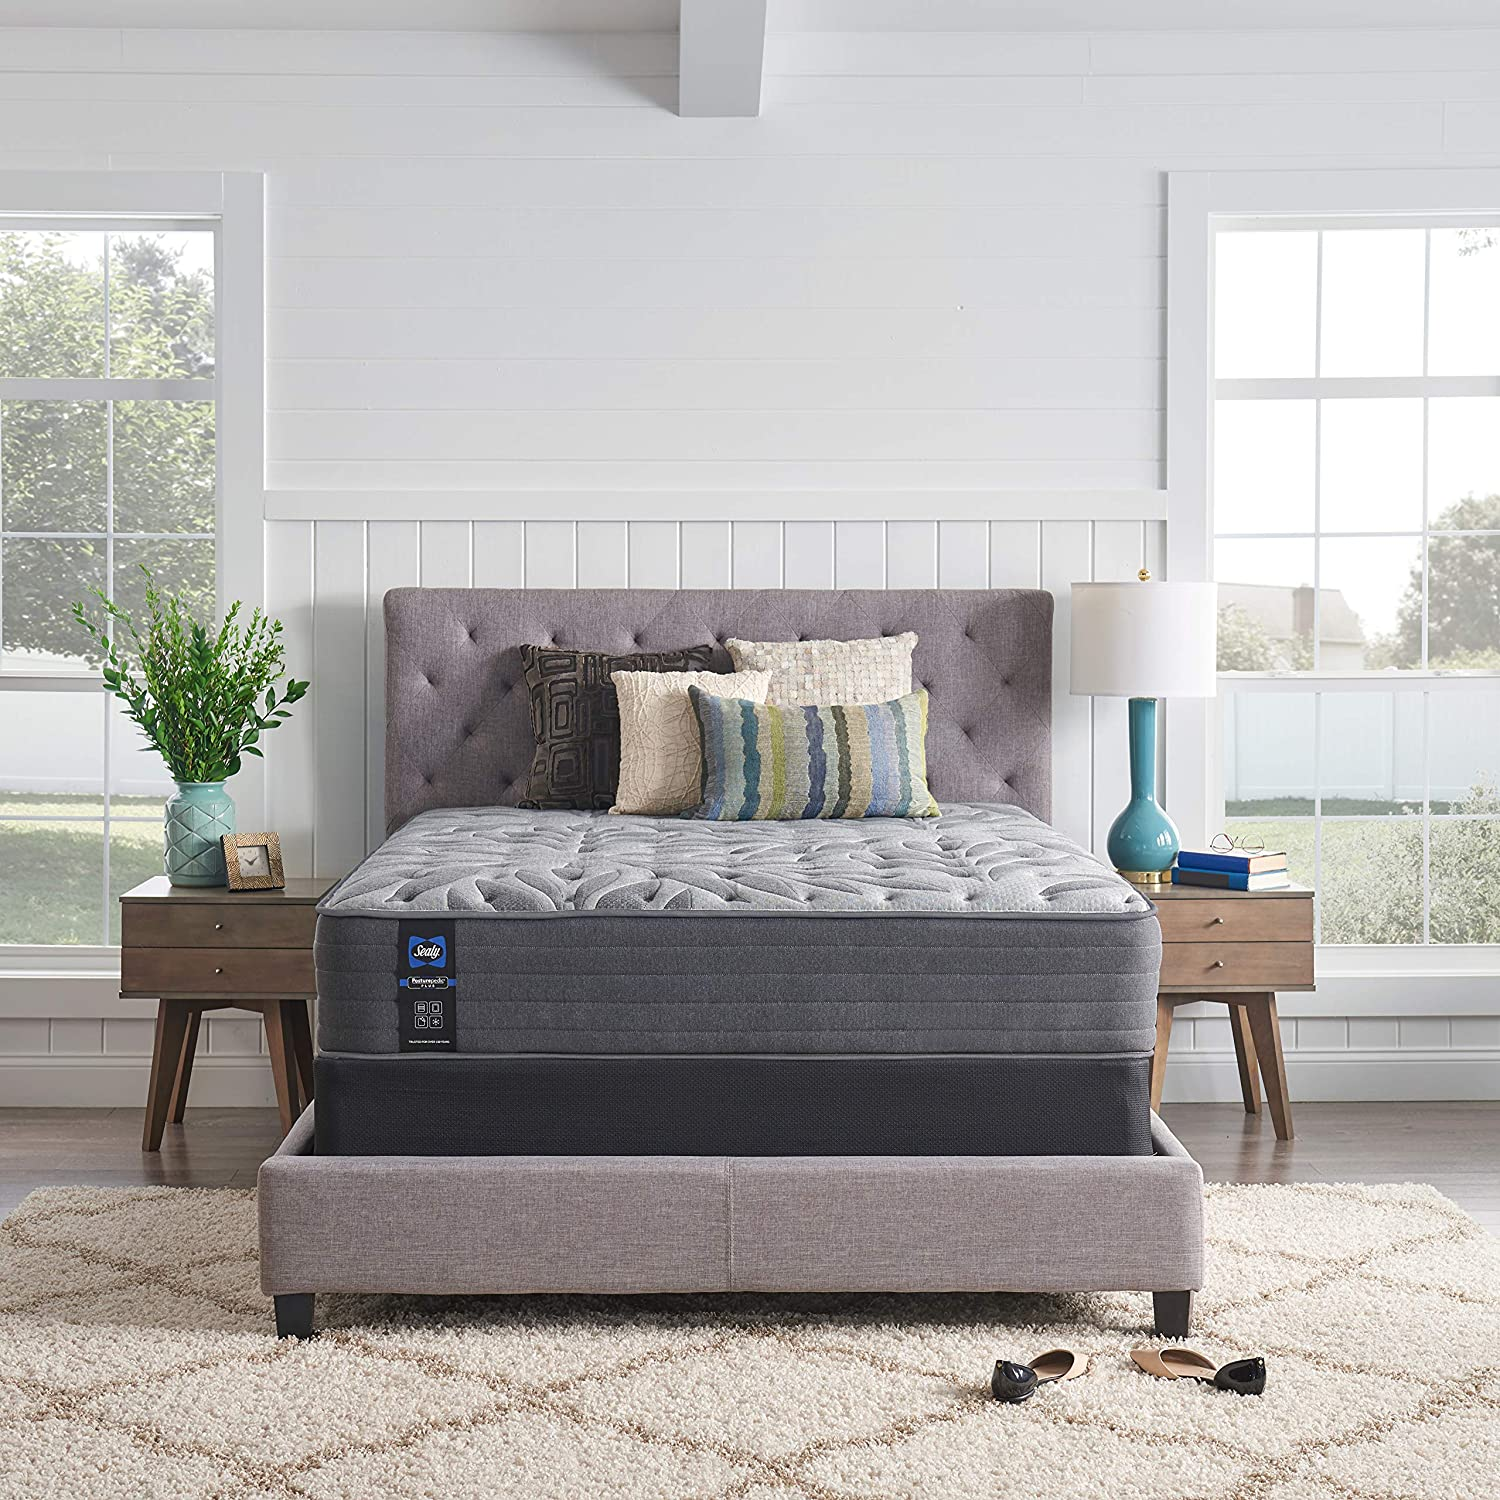 Sealy Posturepedic Max Limited time trial price 43% OFF Plus Tight Top Soft w Plush Mattress 13-Inch